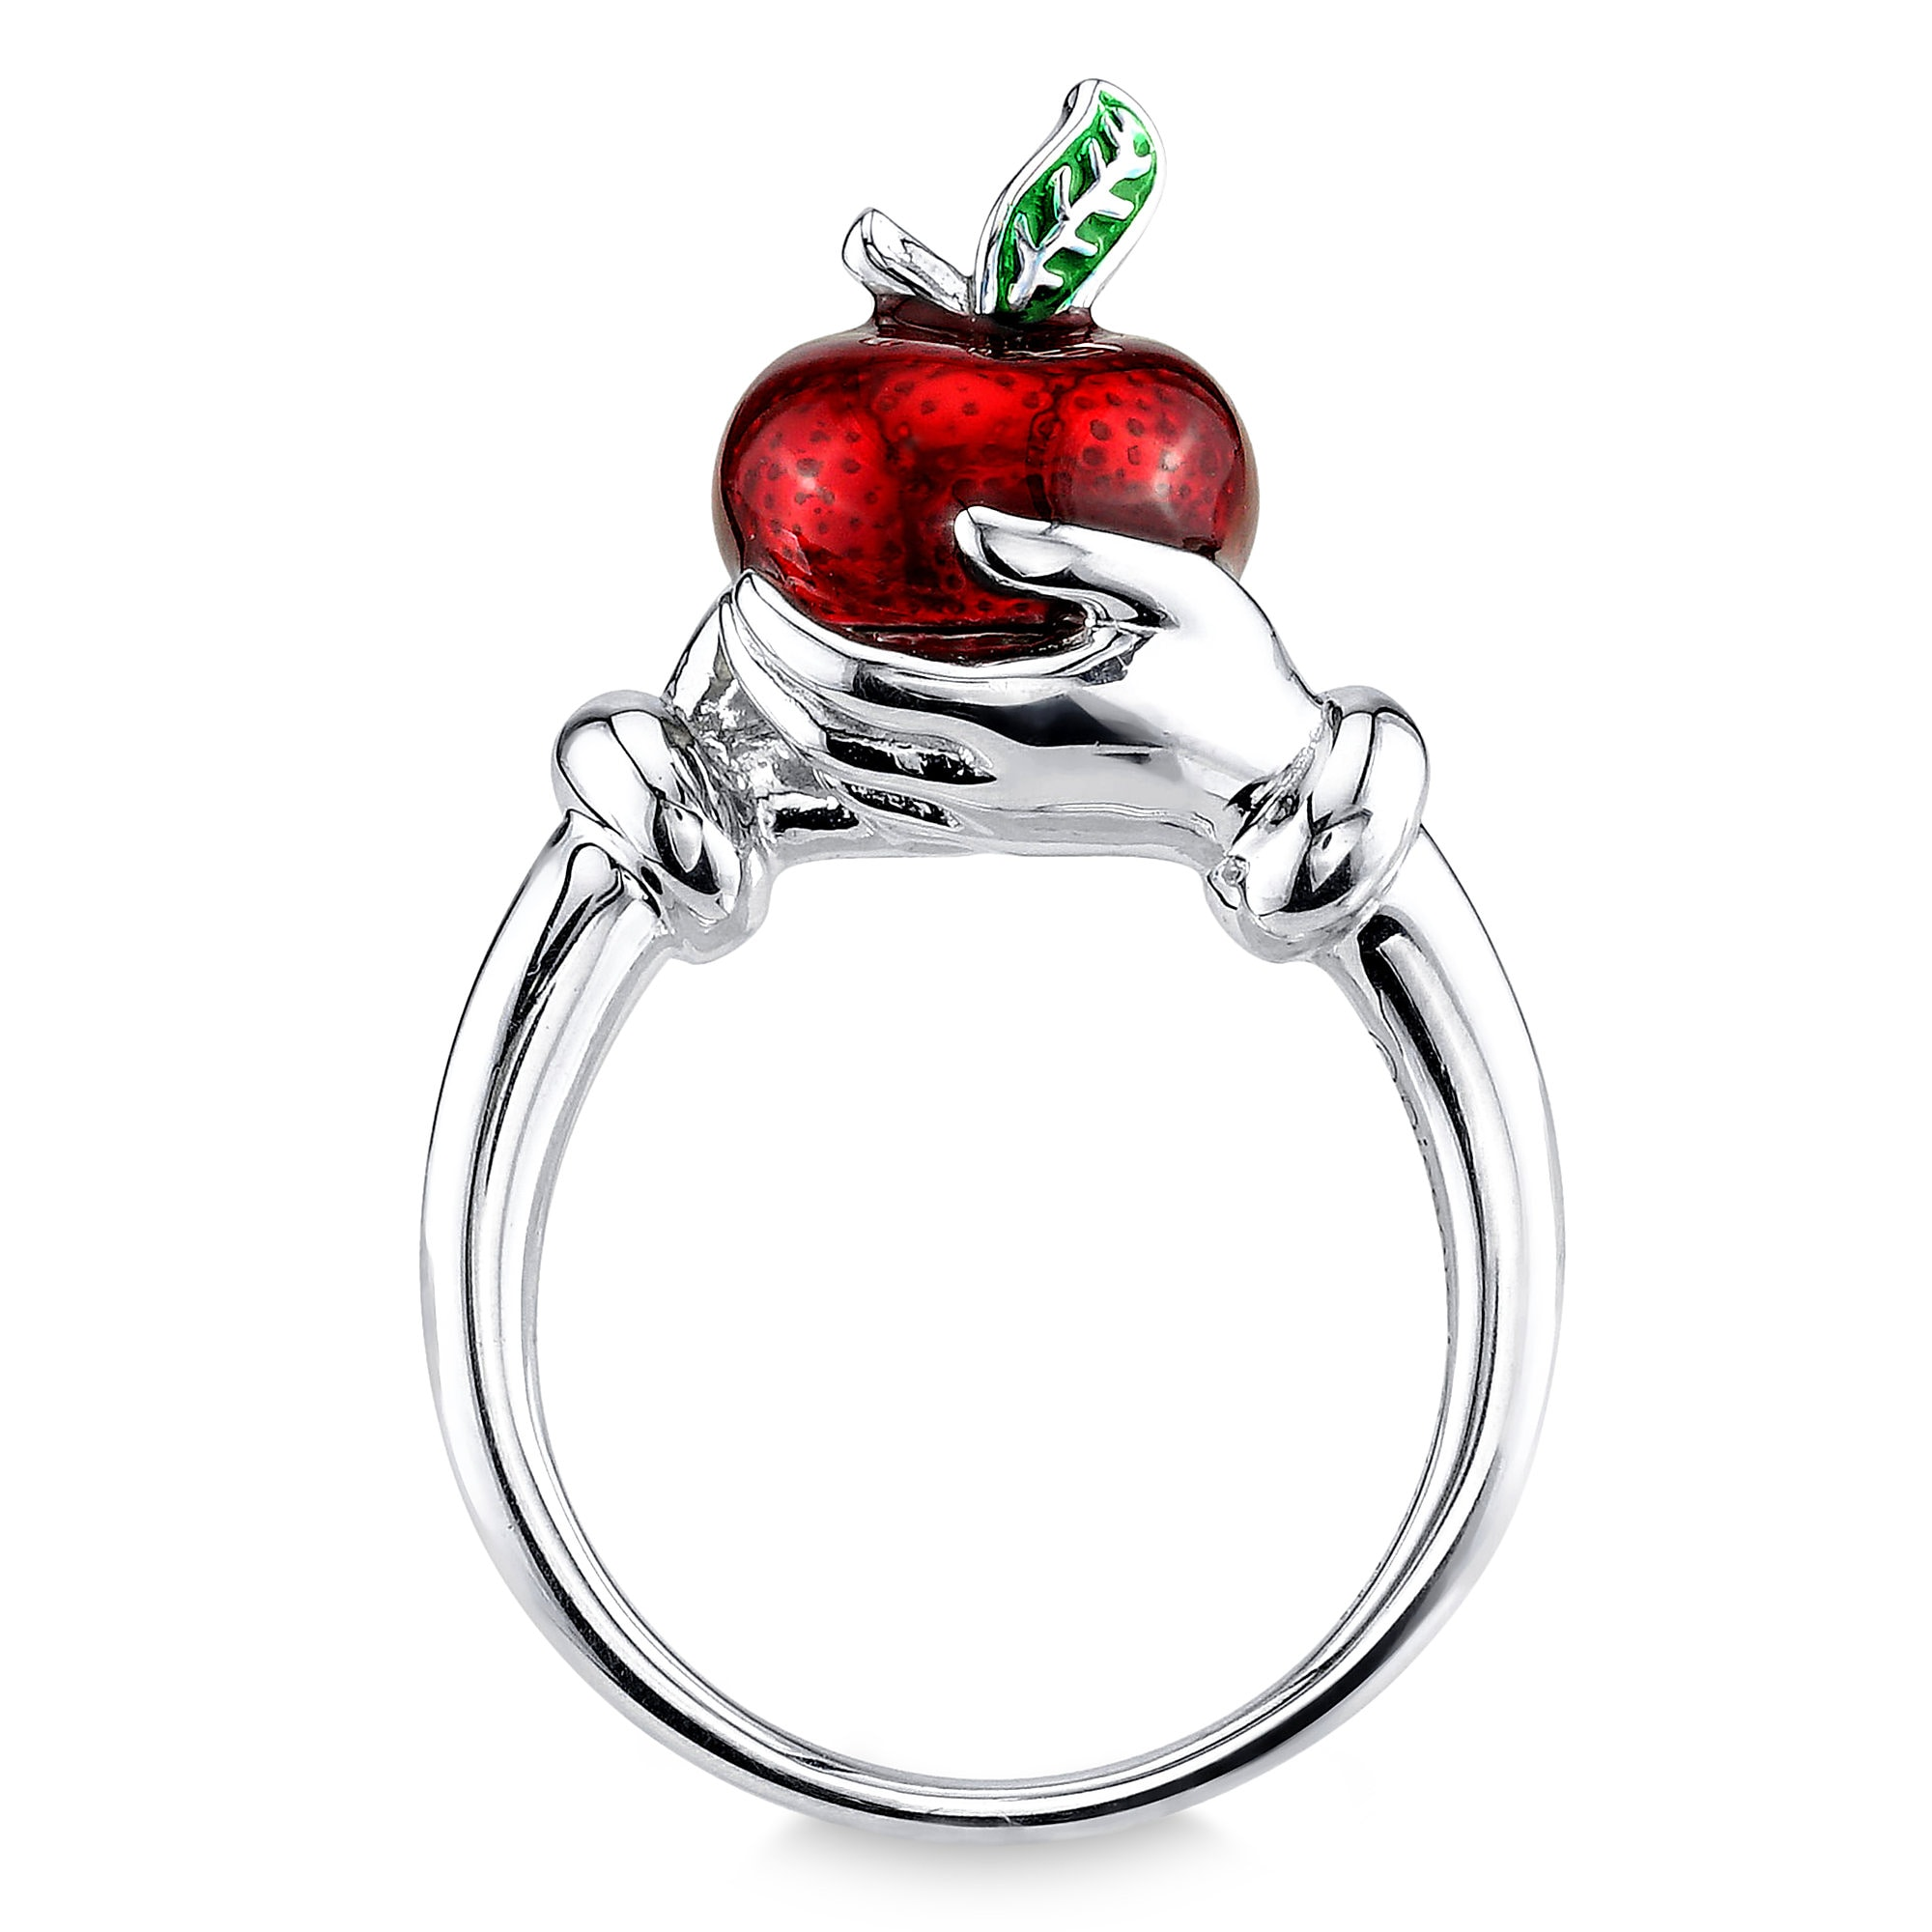 Fairest Apple Ring by RockLove - Snow White and the Seven Dwarfs